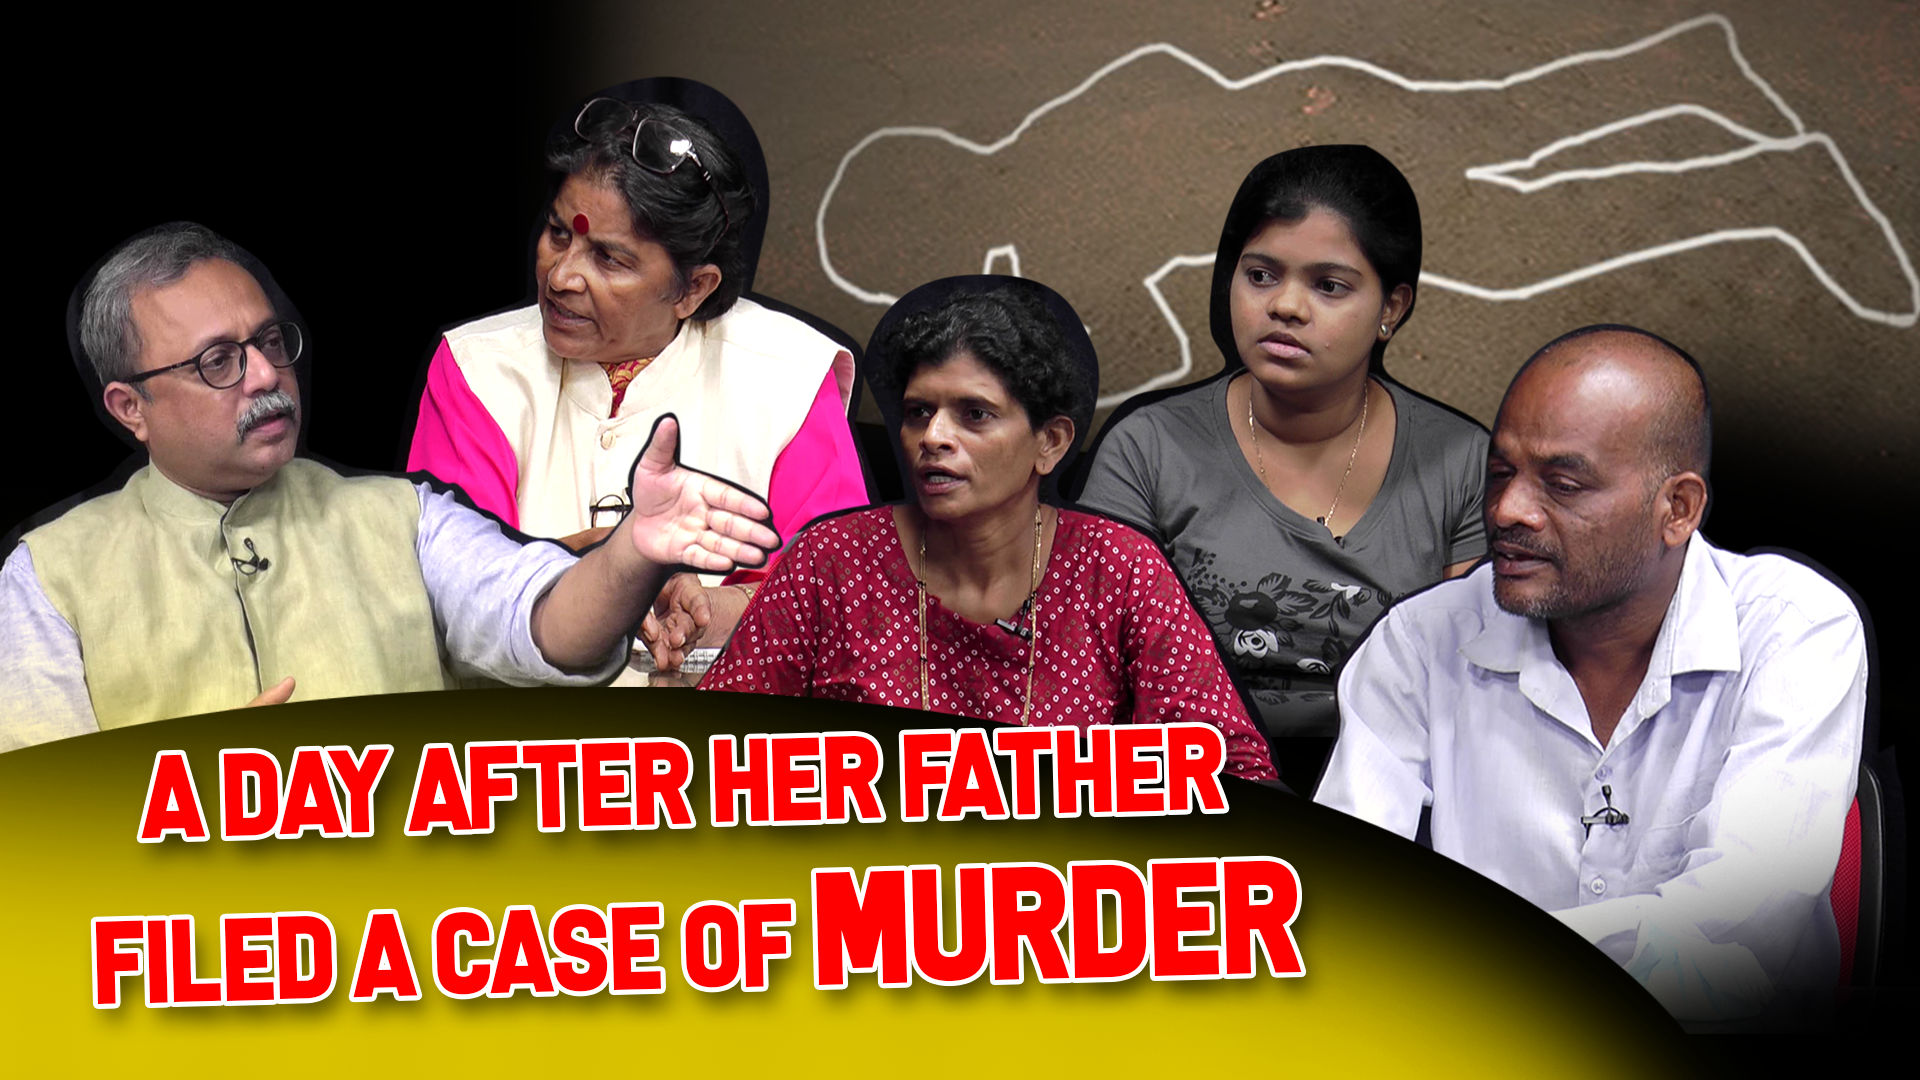 STORY BEHIND THE STORY : A day after her father filed a case of murder